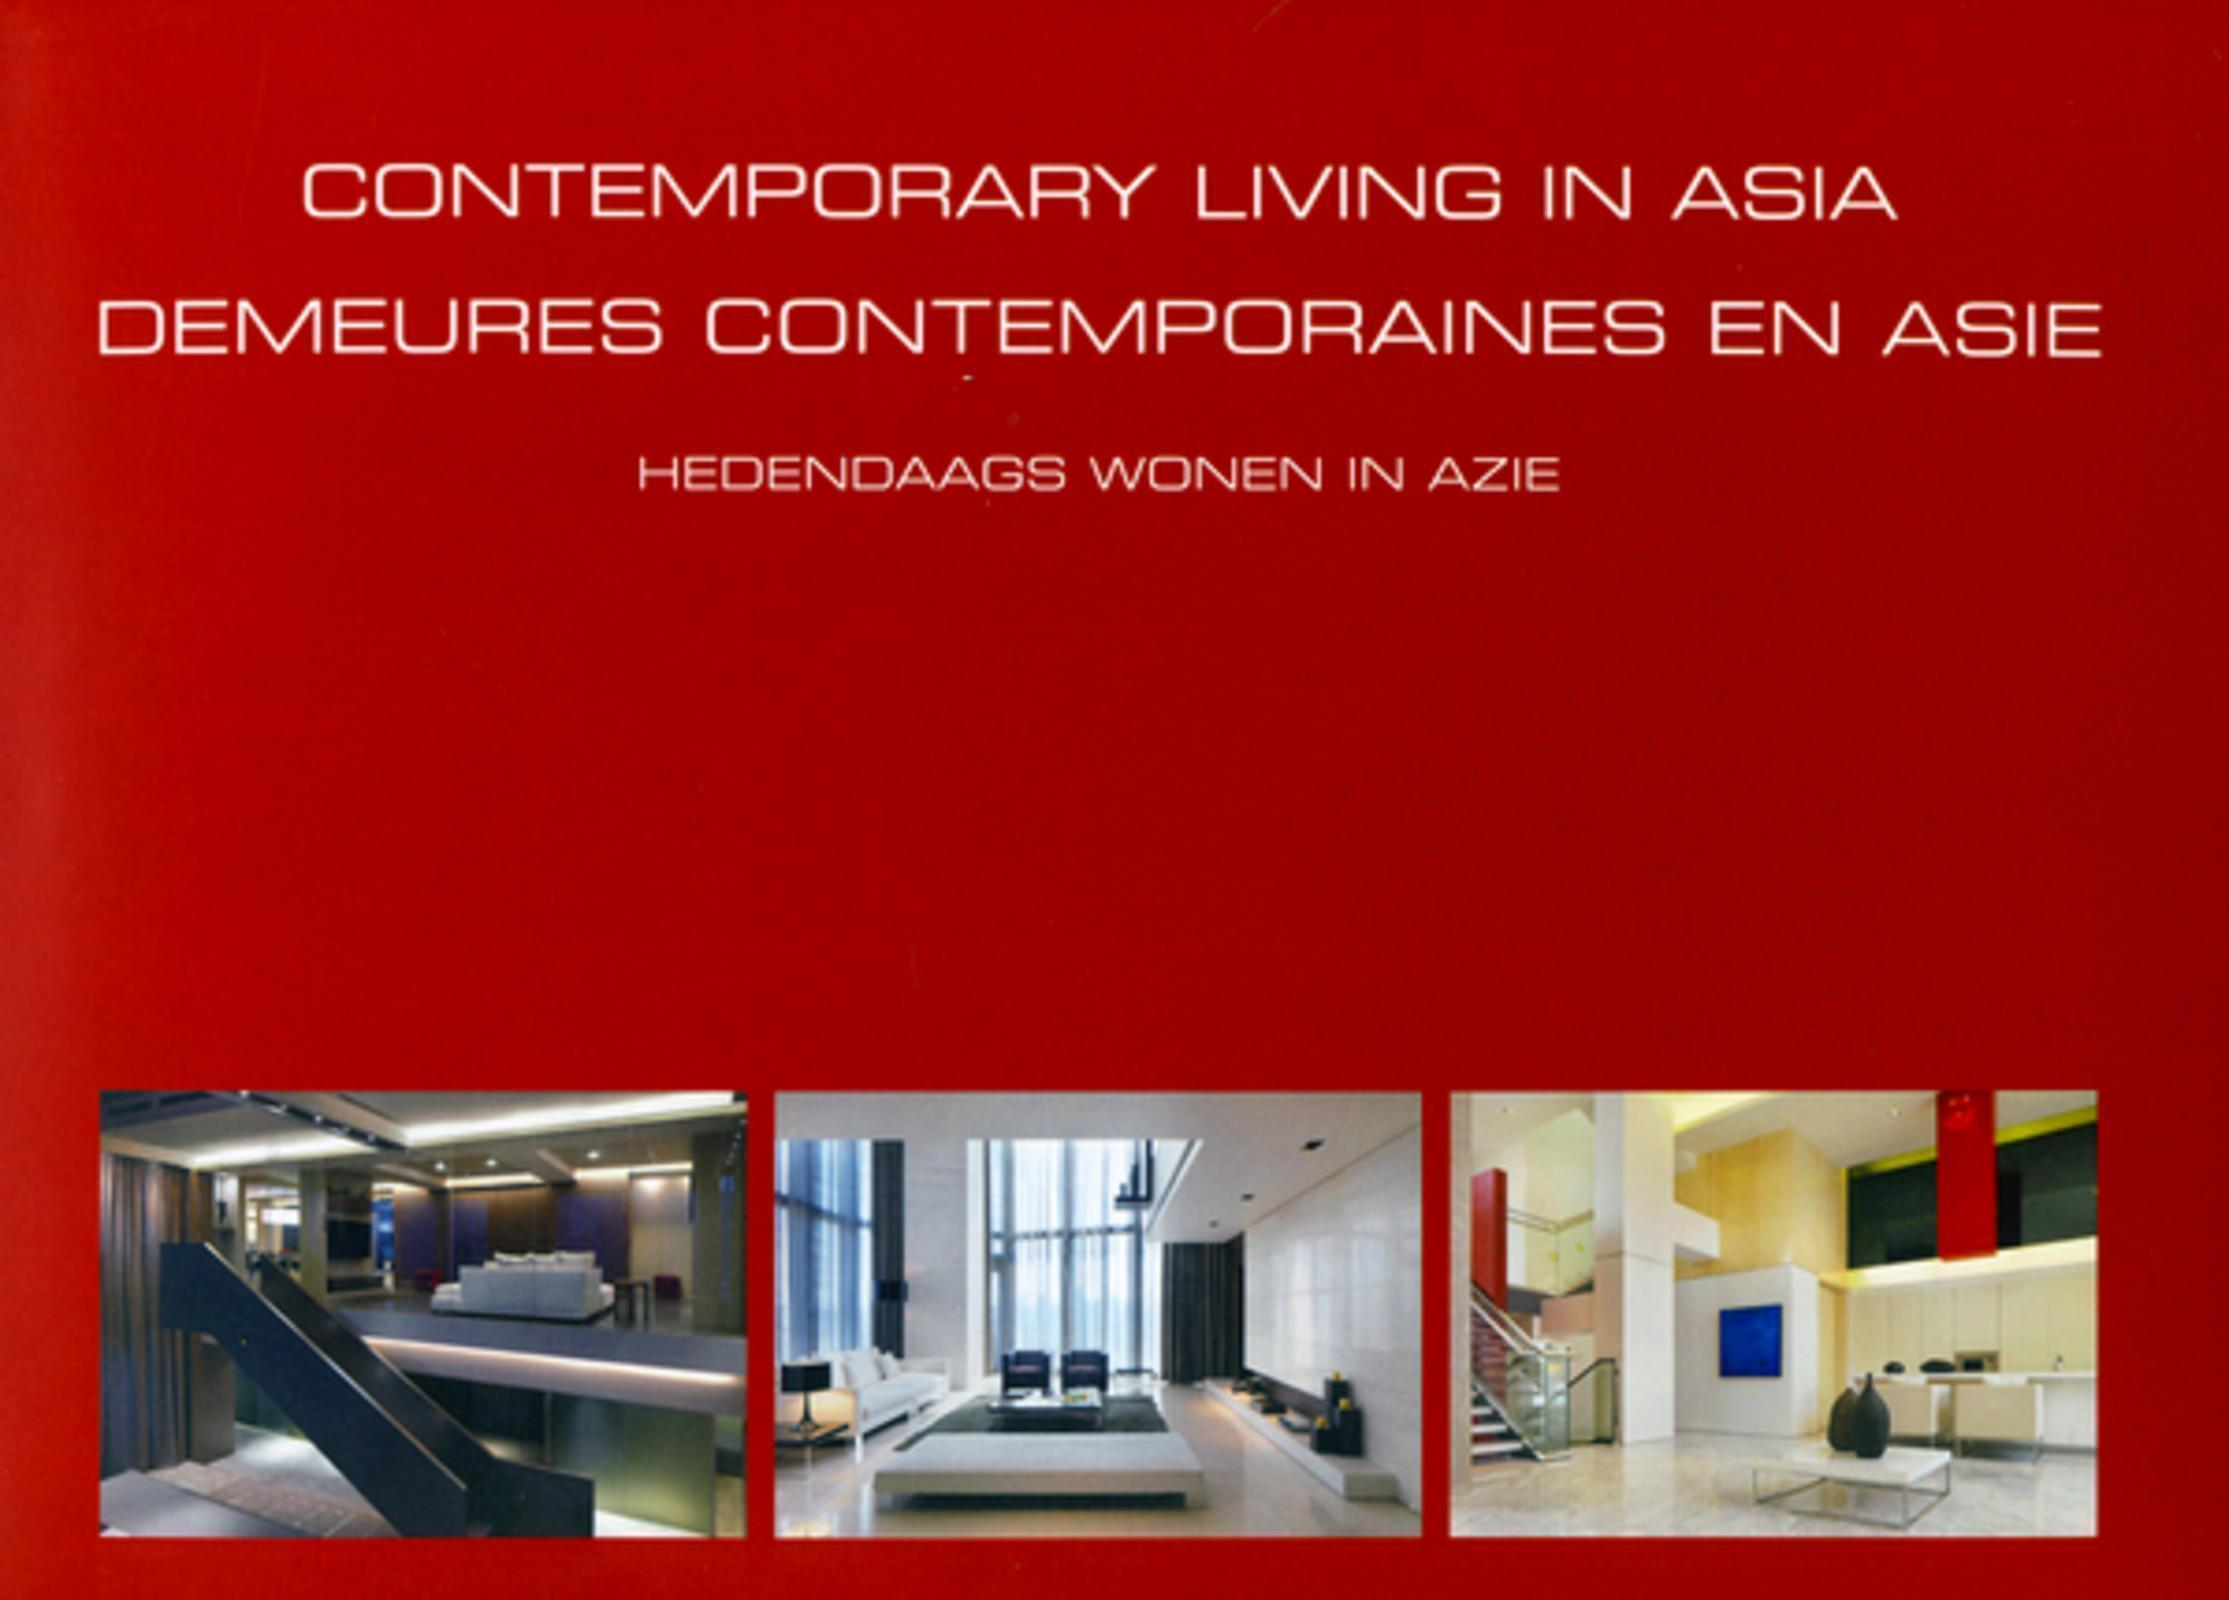 CONTEMPORARY LIVING IN ASIA